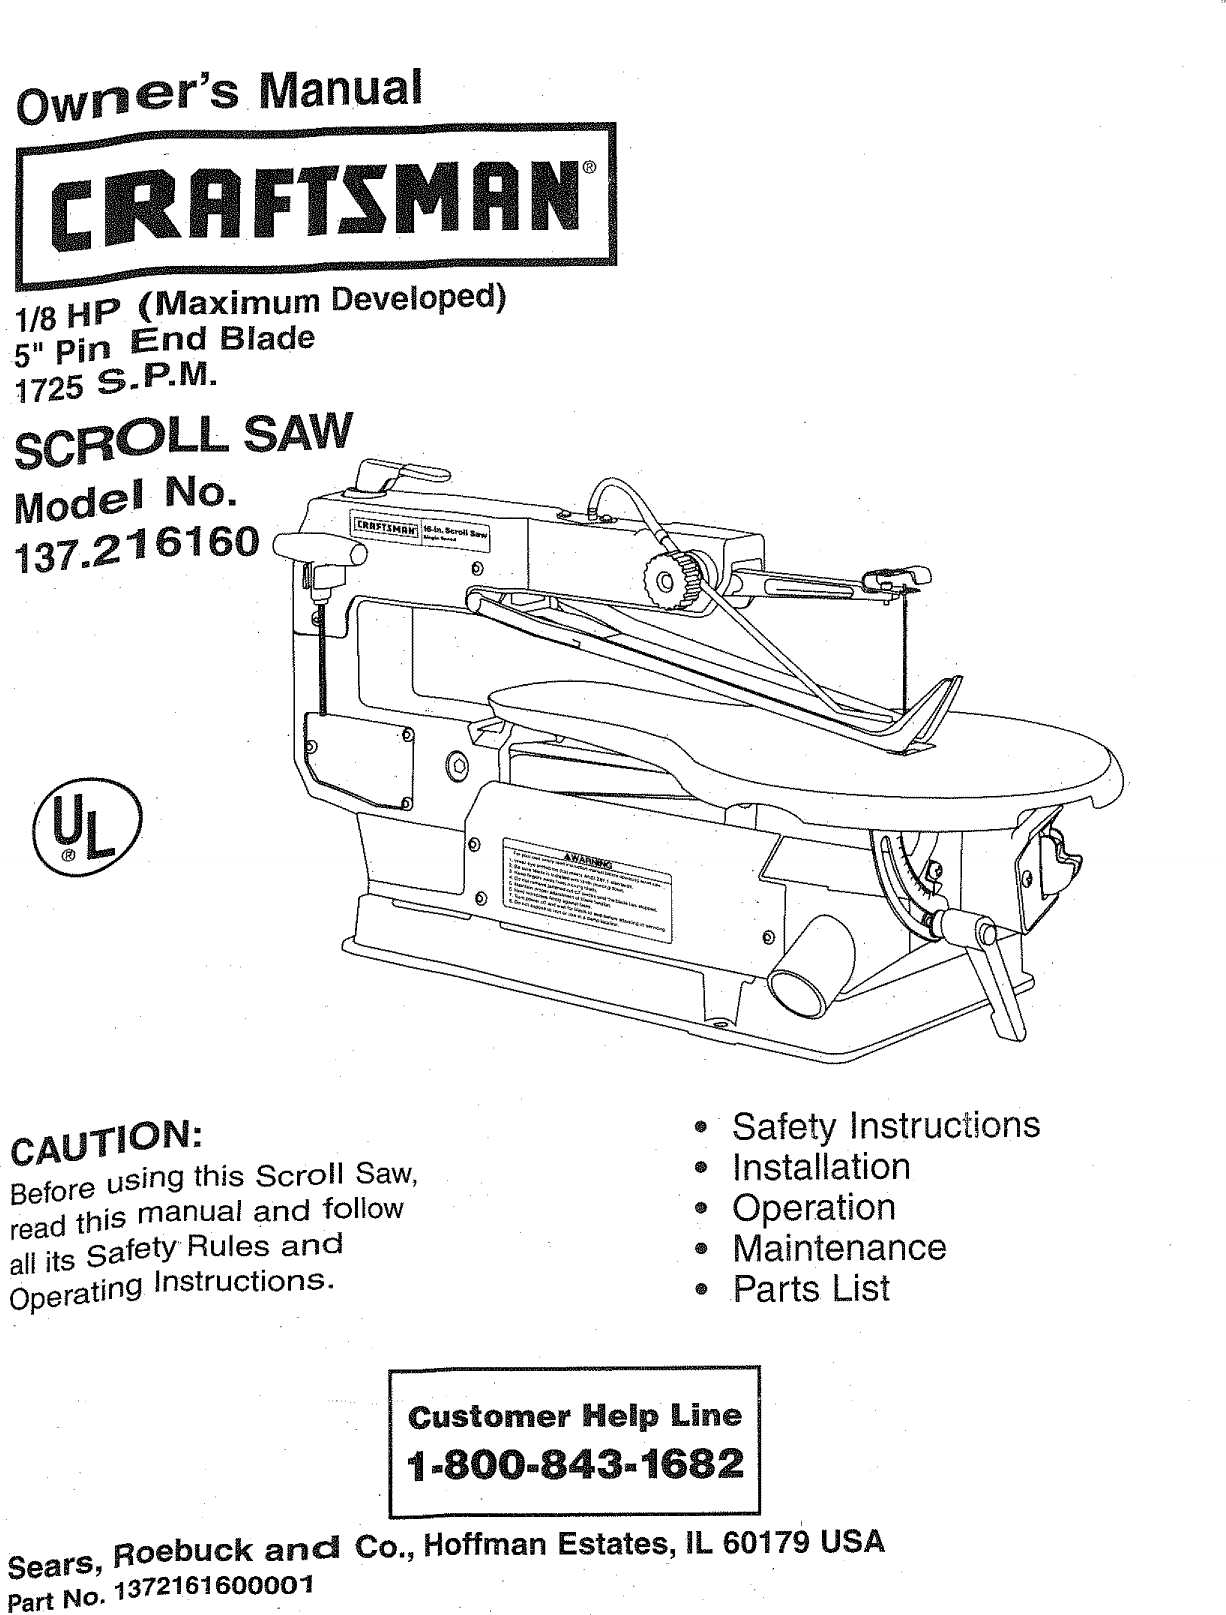 Craftsman 137216160 user manual scroll saw manuals and guides l0808290 page 1 of craftsman 137216160 user manual scroll saw manuals and guides l0808290 greentooth Image collections